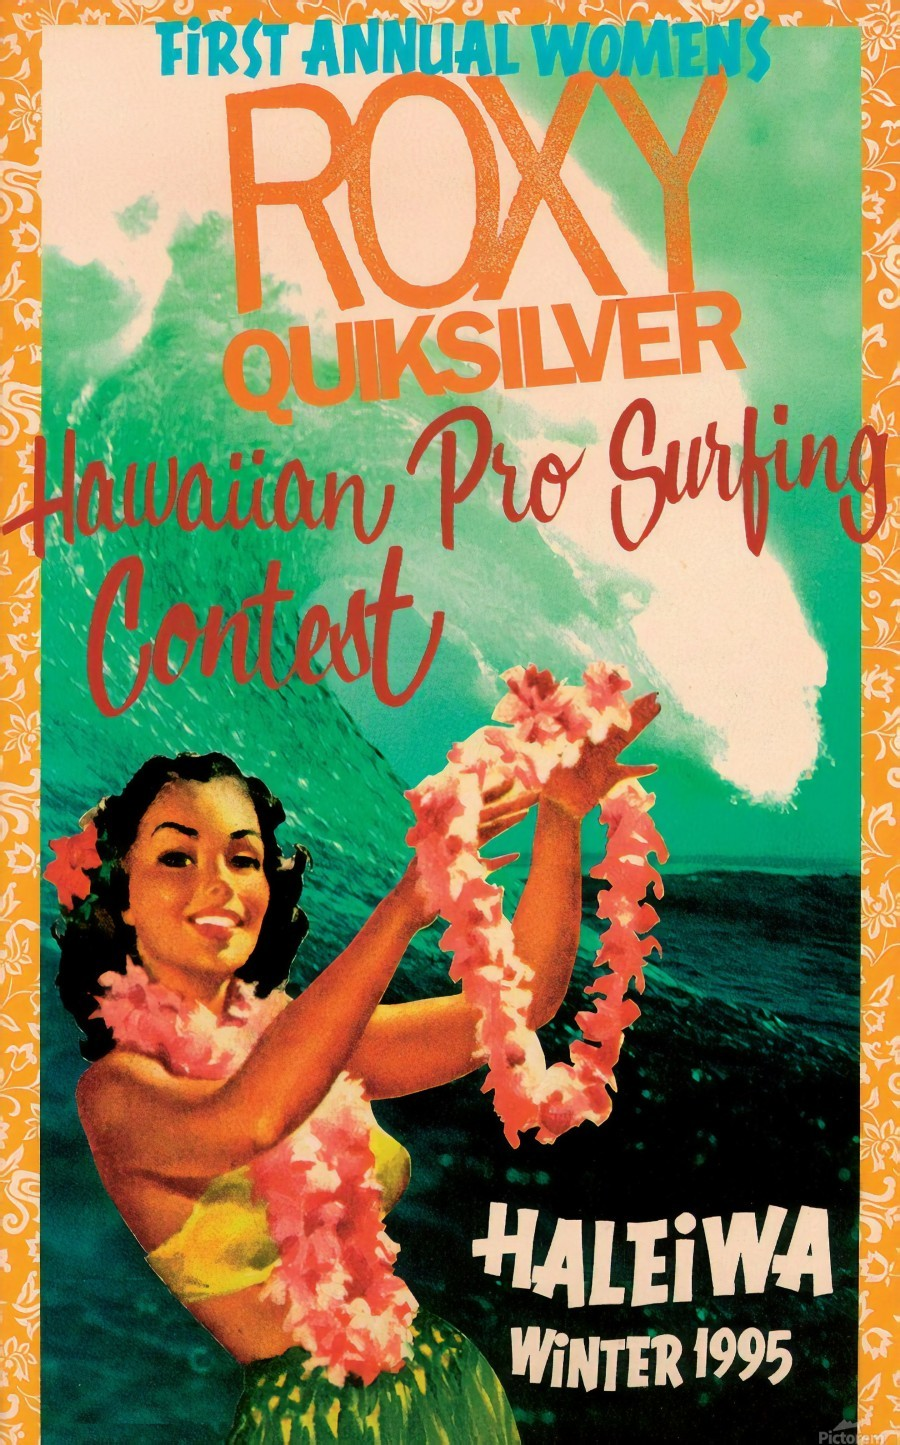 1995 ROXY QUICKSILVER HAWAII PRO Surfing Competition Poster  Print